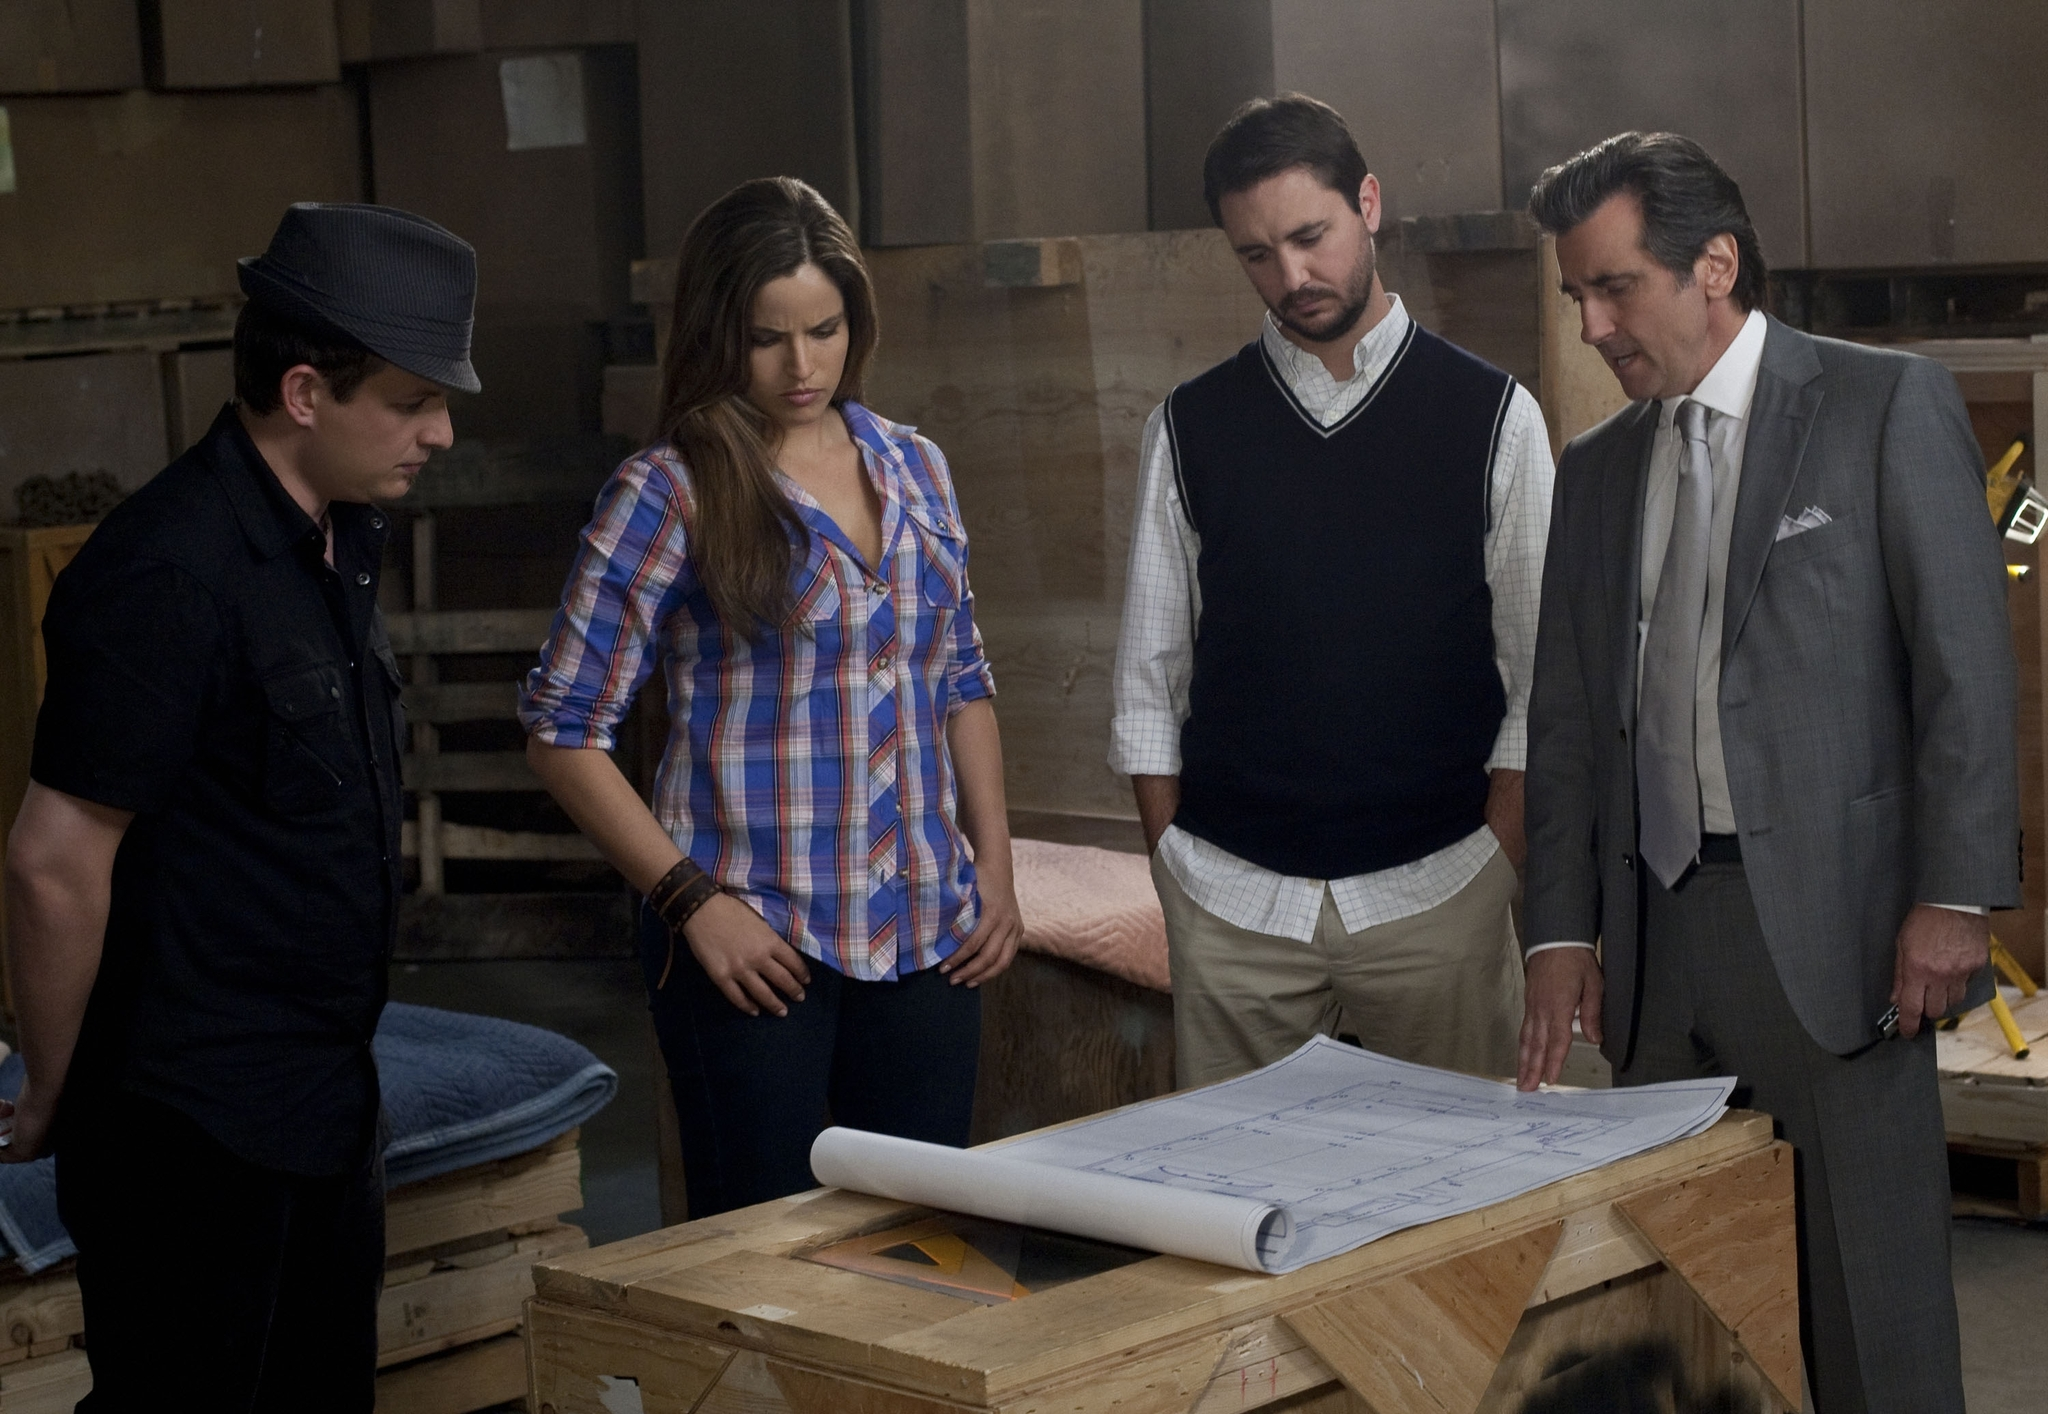 Wil Wheaton, Griffin Dunne, Noa Tishby, and Apollo Robbins in Leverage (2008)